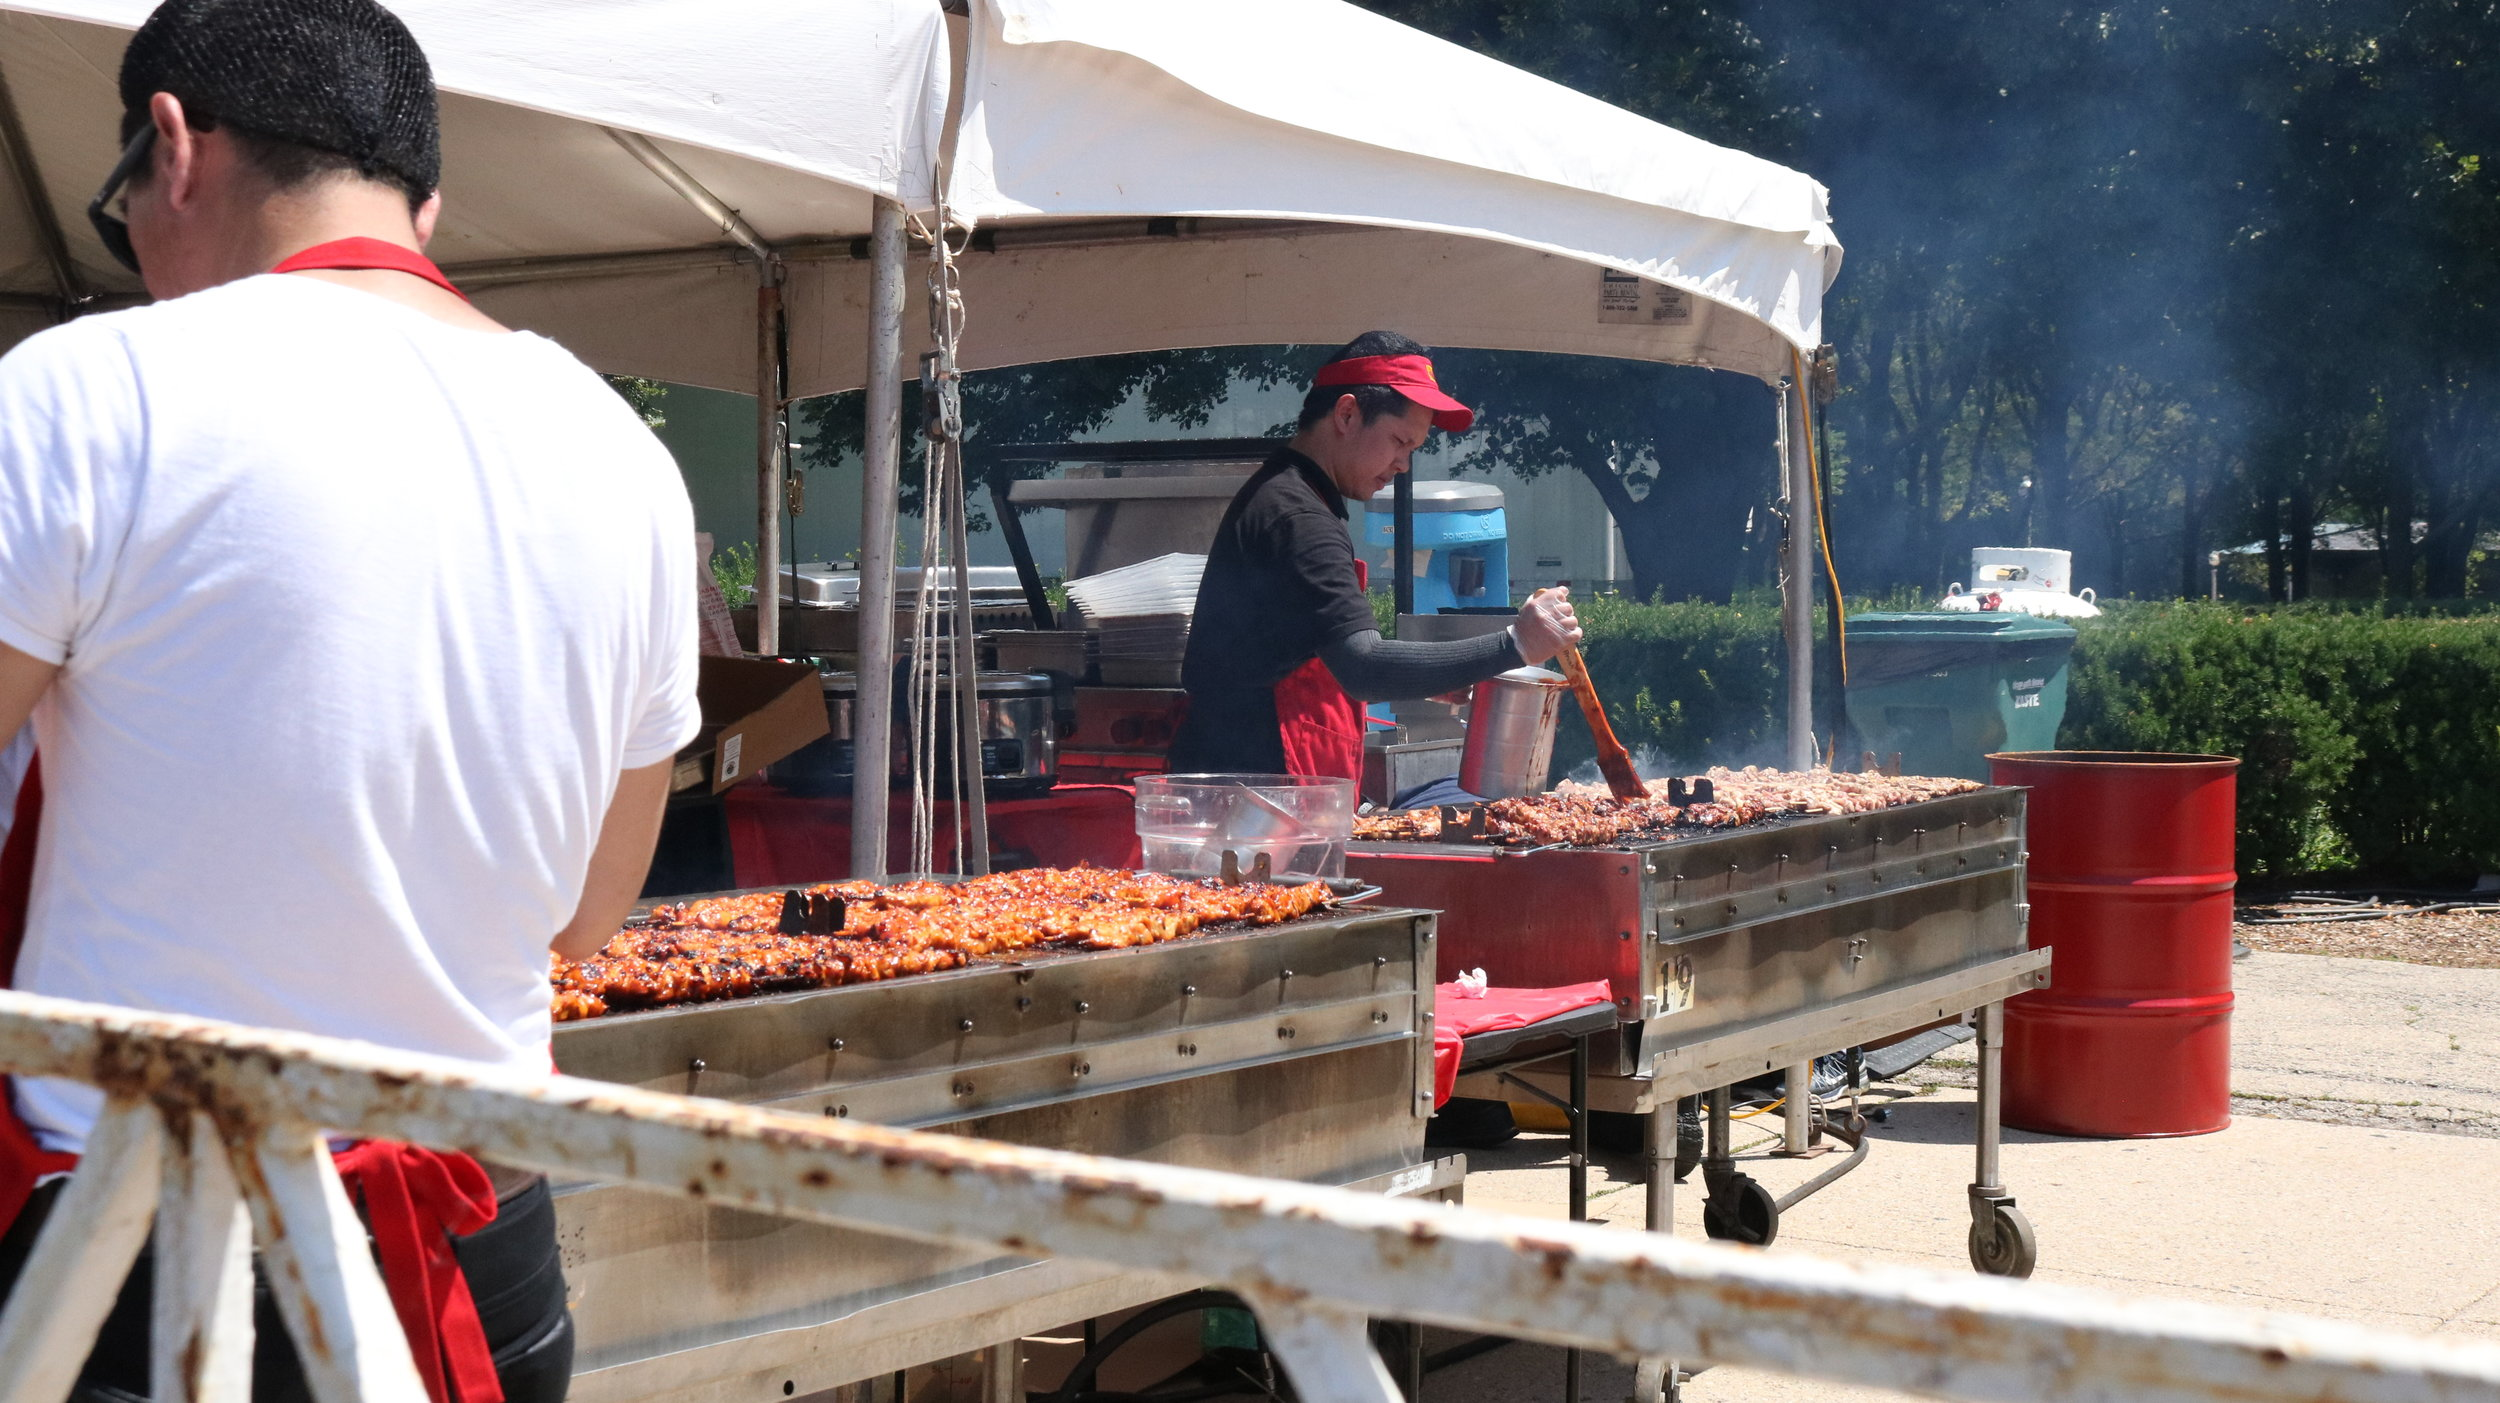 Grill City's Cook preparing Chicken BBQ on Stick during the first day of the Taste of Chicago. Photo by Clariza Adao